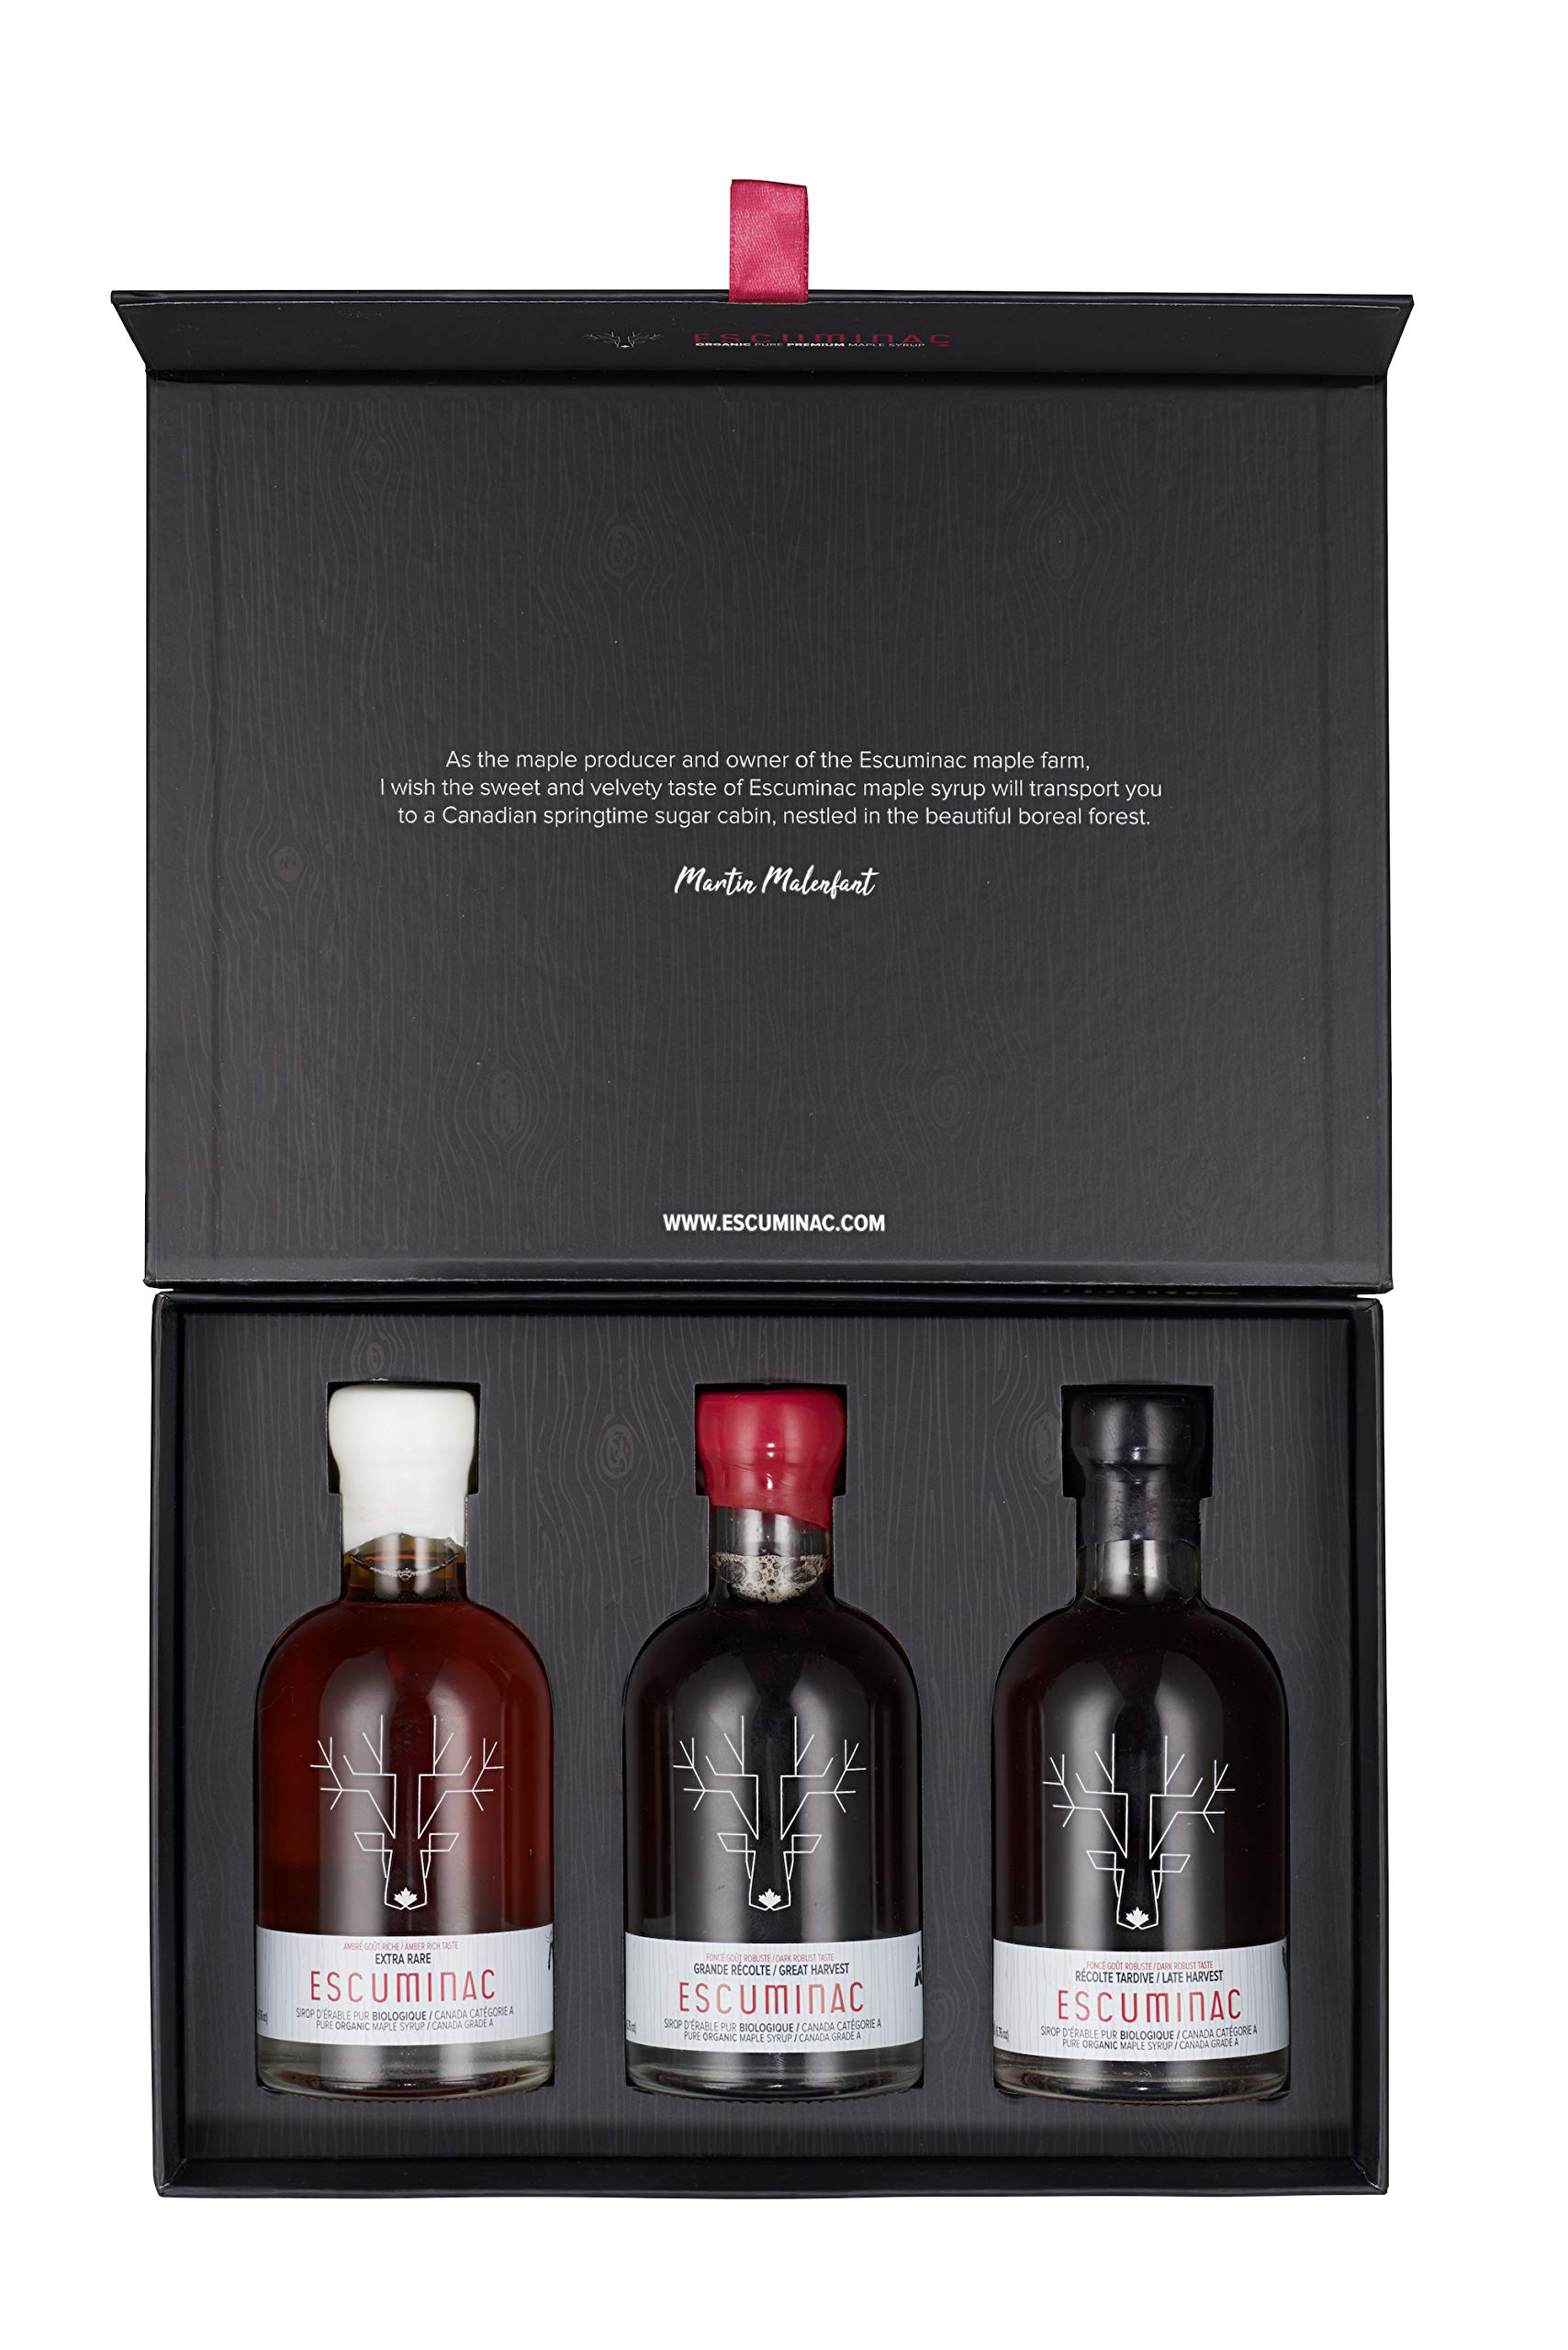 Award winning Escuminac Canadian Maple Syrup, Special Edition Gift Box (3 x 200 ml) Including - Extra Rare, Great Harvest, Late Harvest. Single Origin, Organic. Father's Day Gift